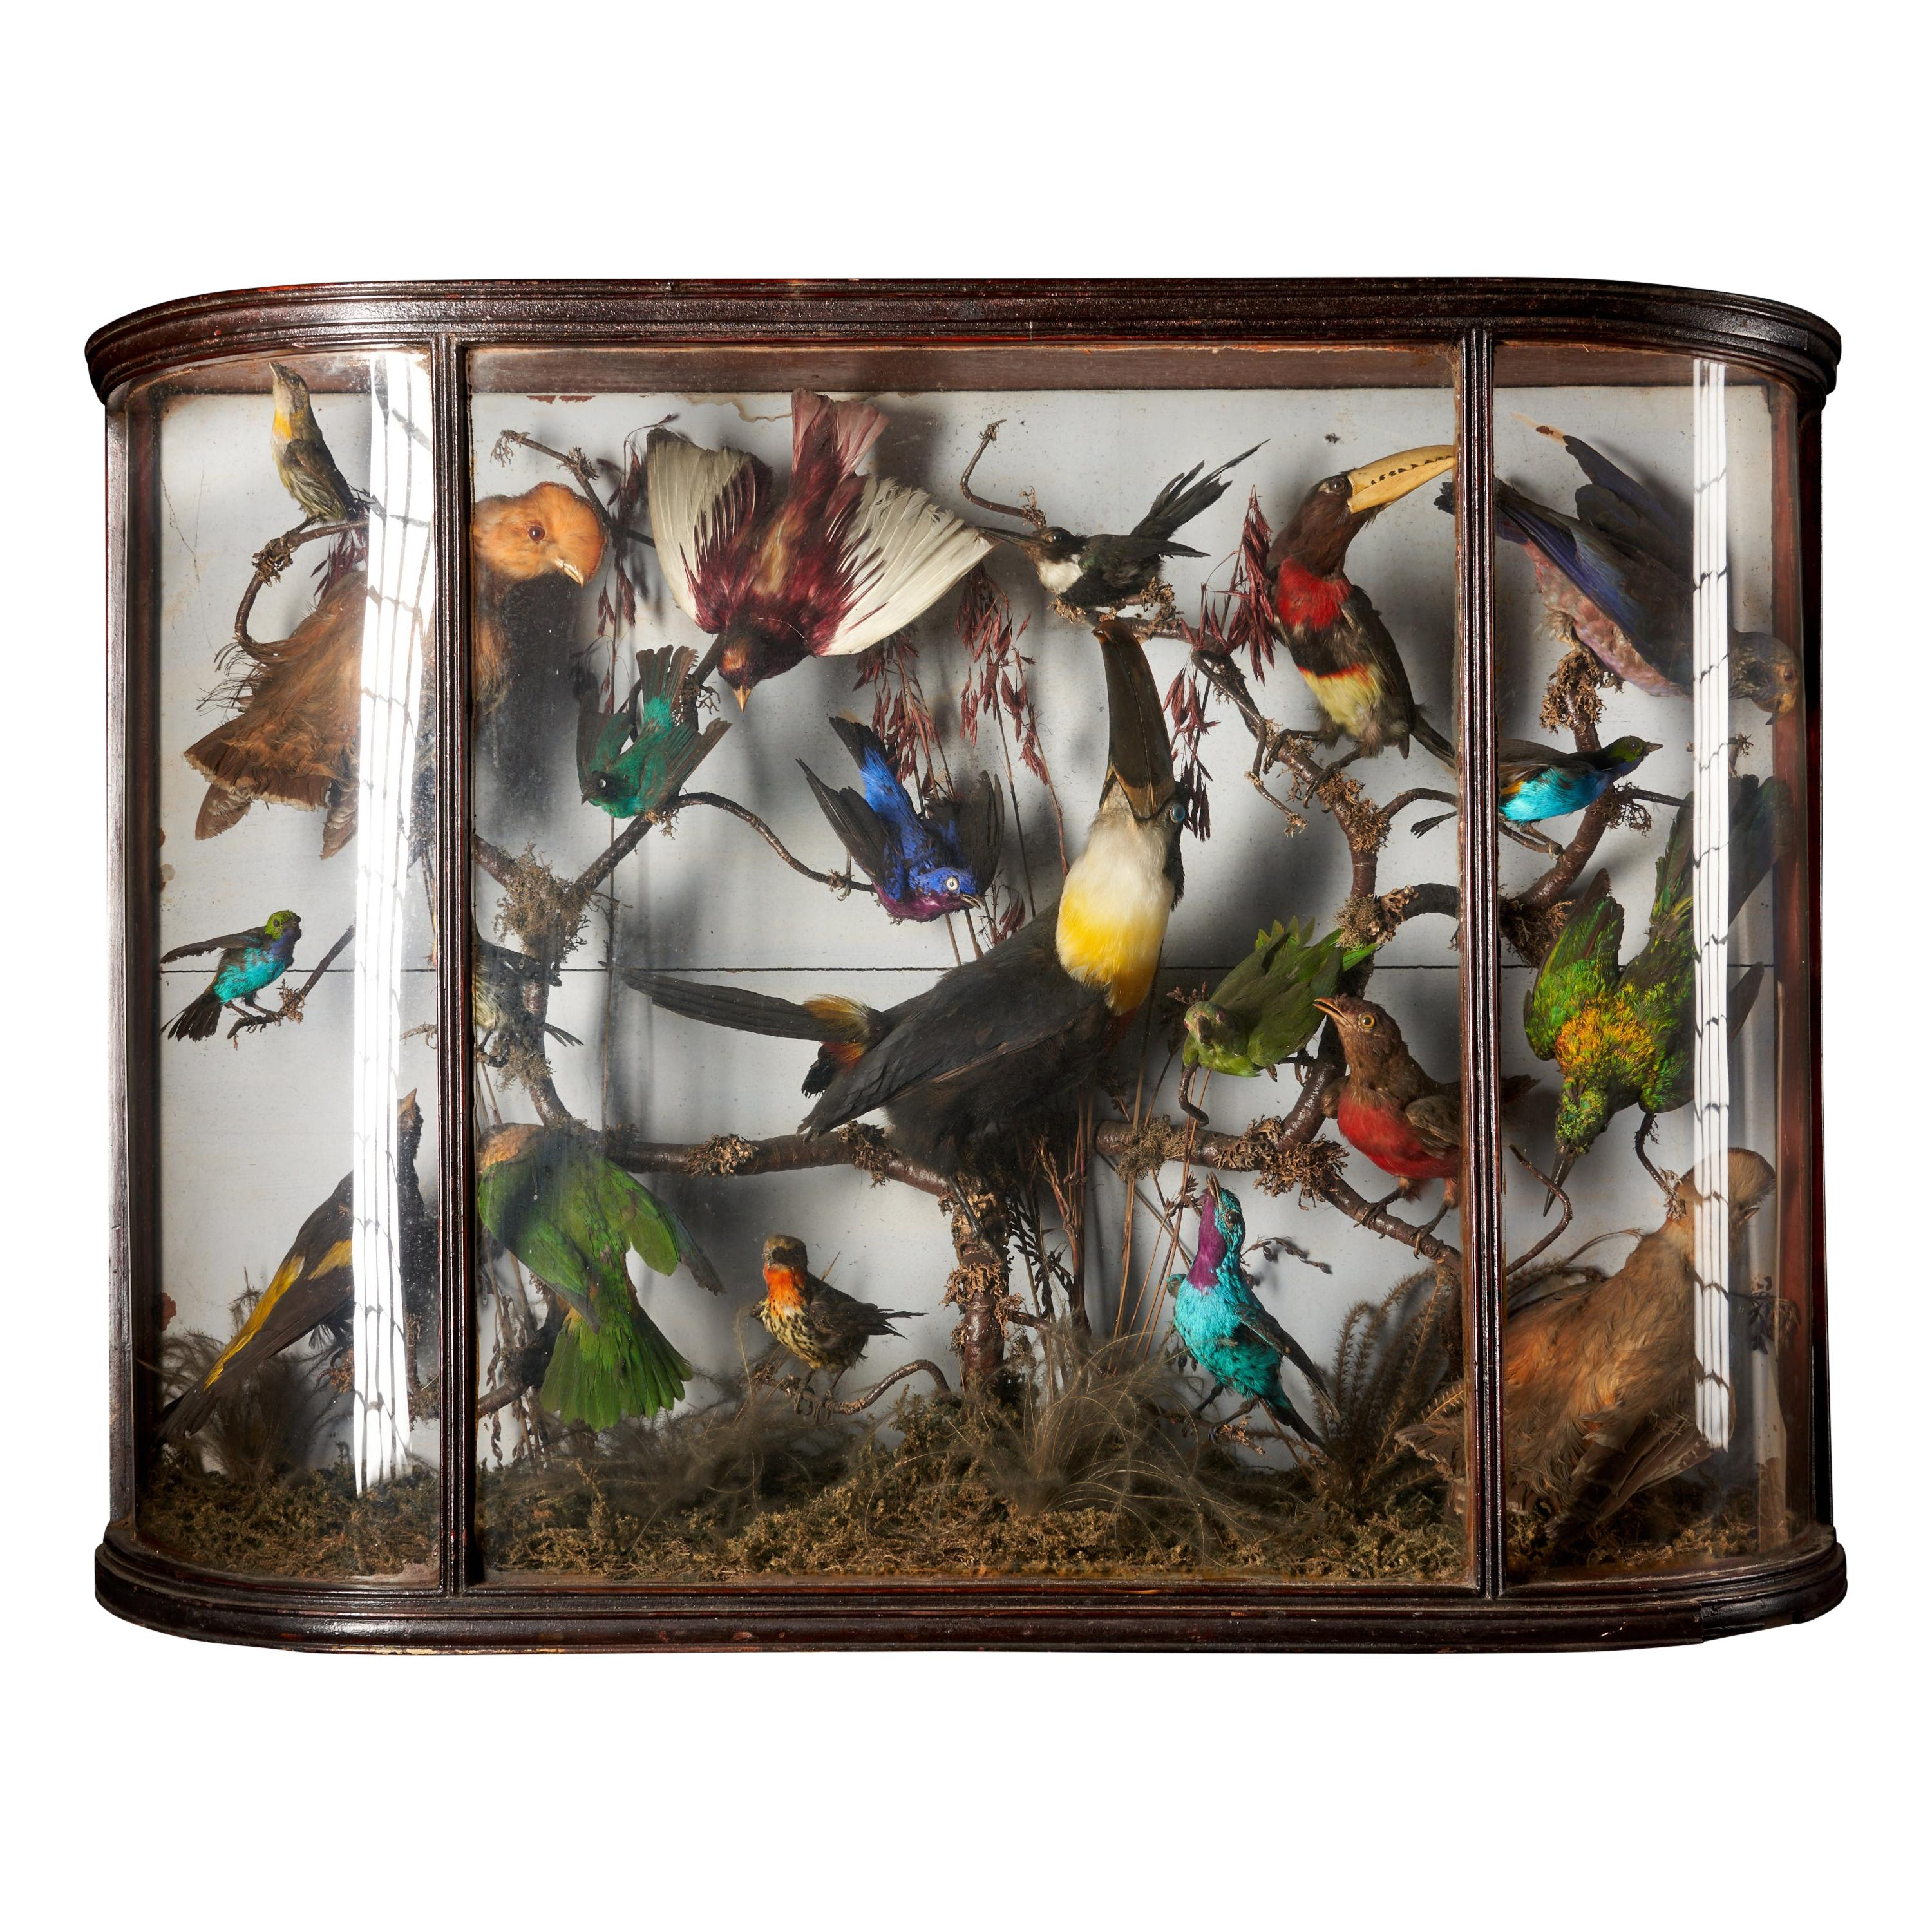 Taxidermy Composition with Rare Exotic Birds in a Large Bowed Glass Case